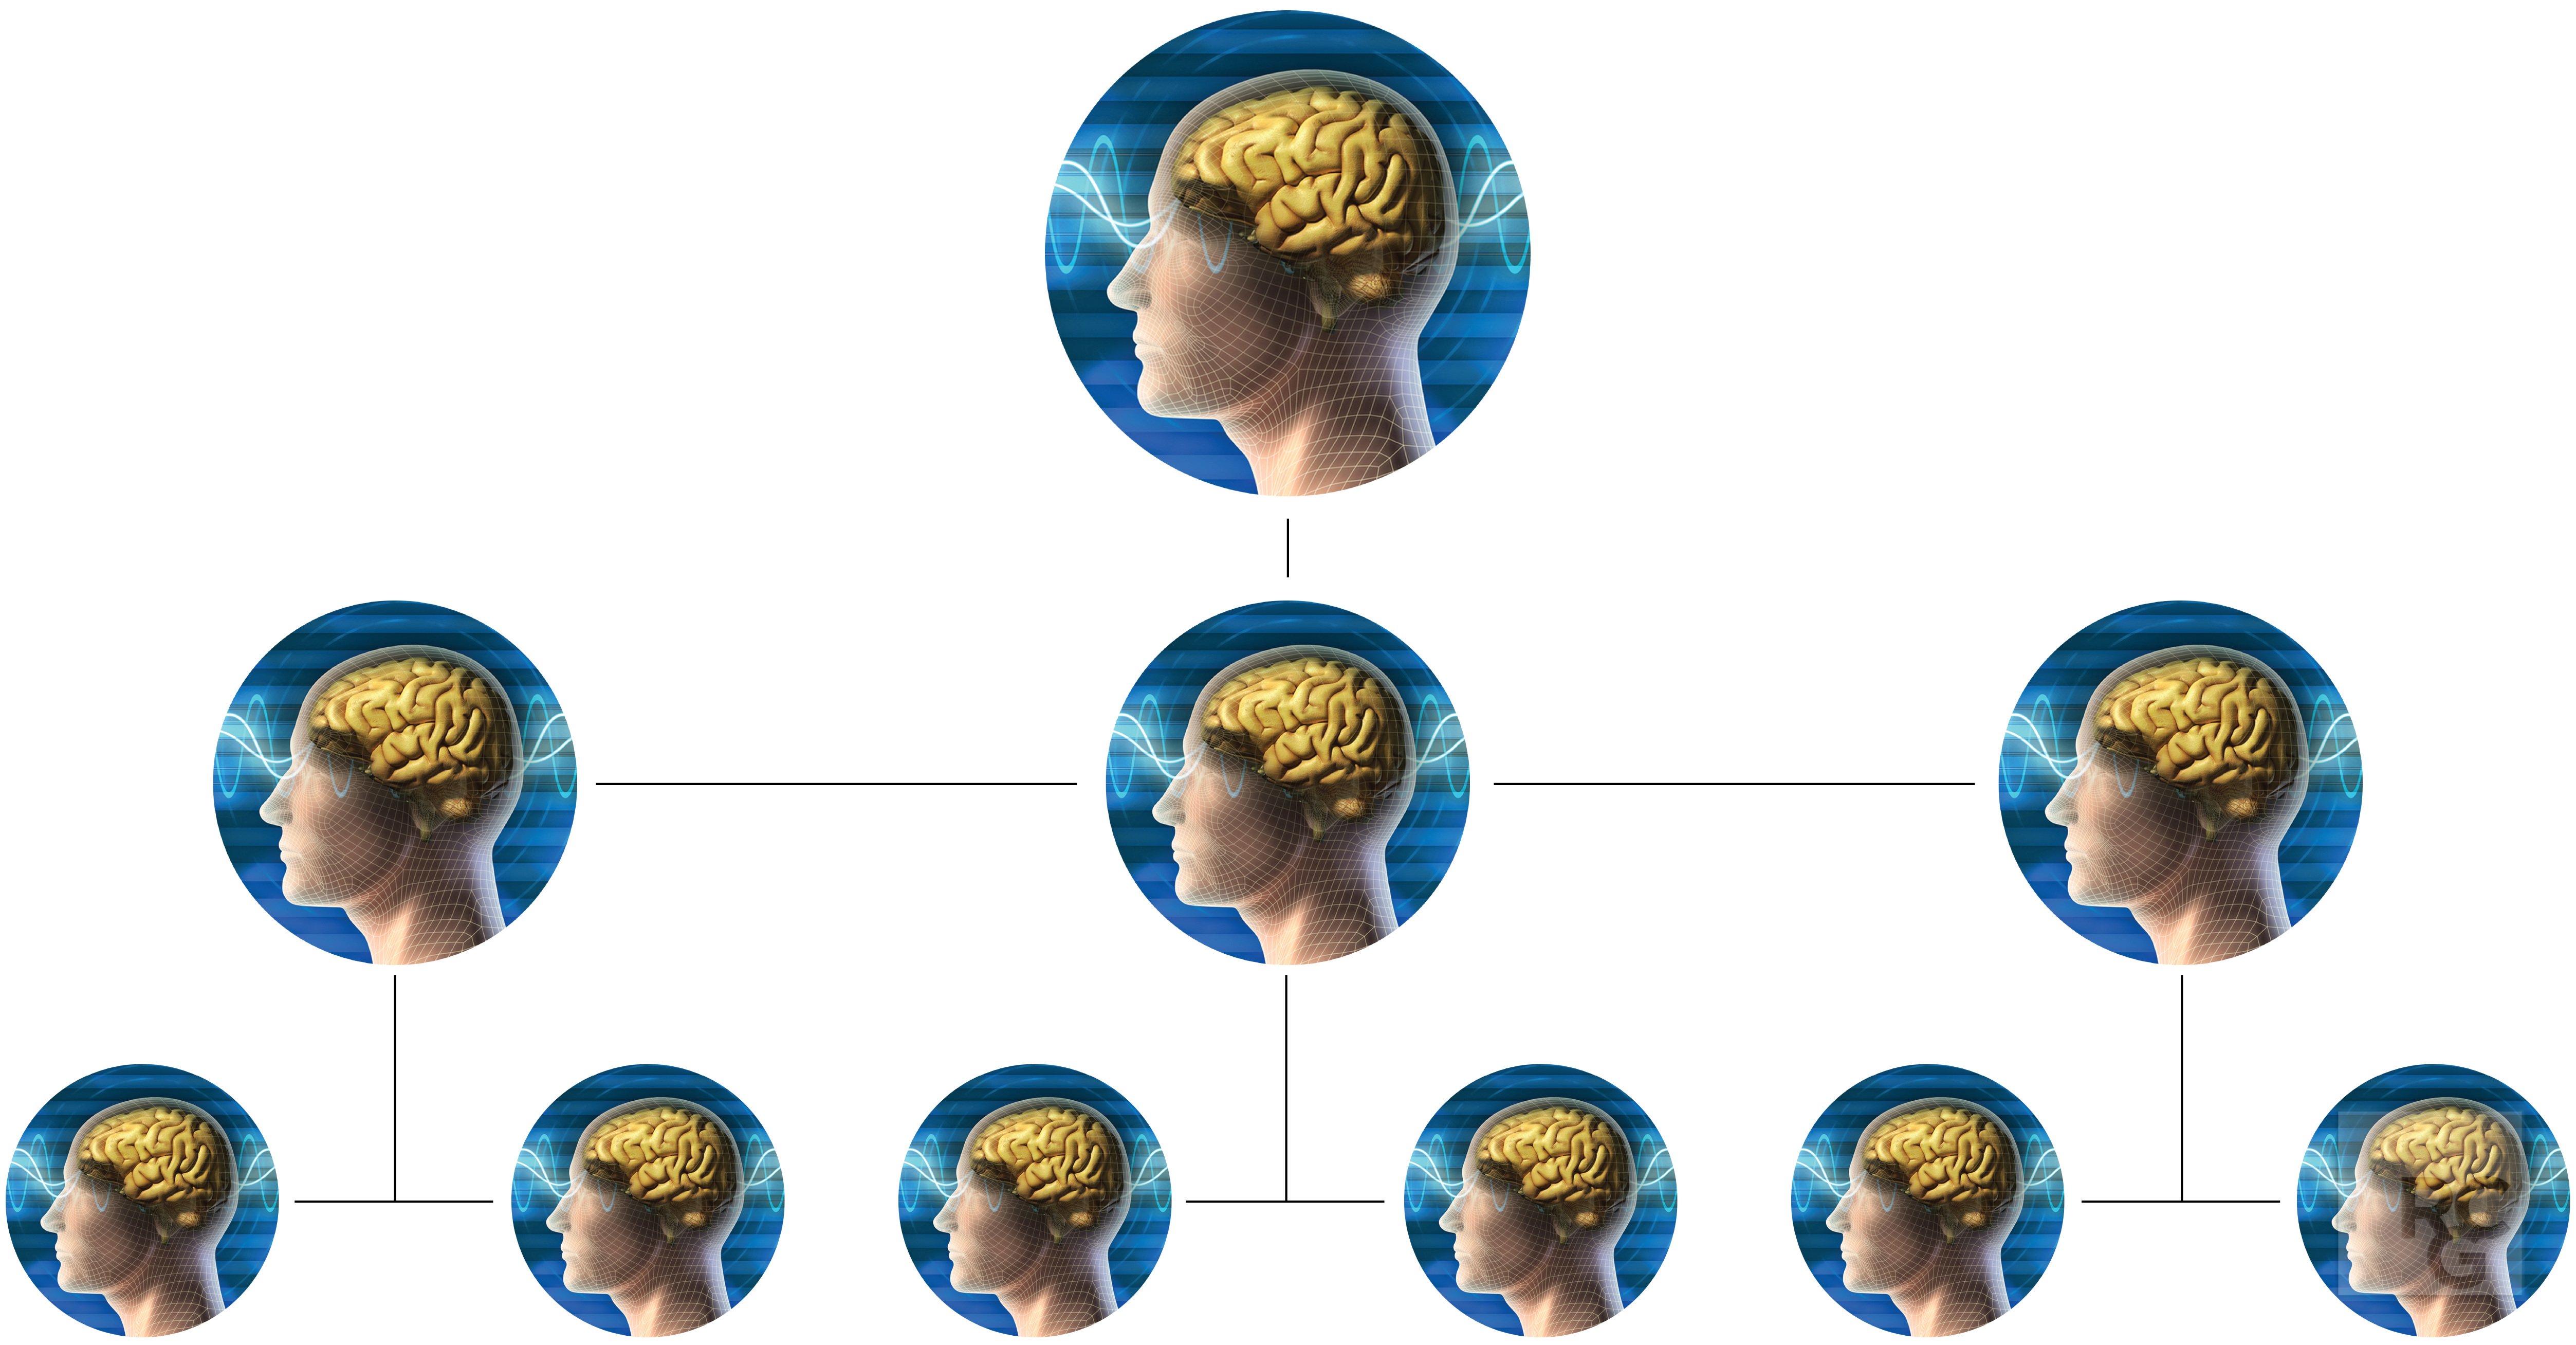 Network_of_Brains.png